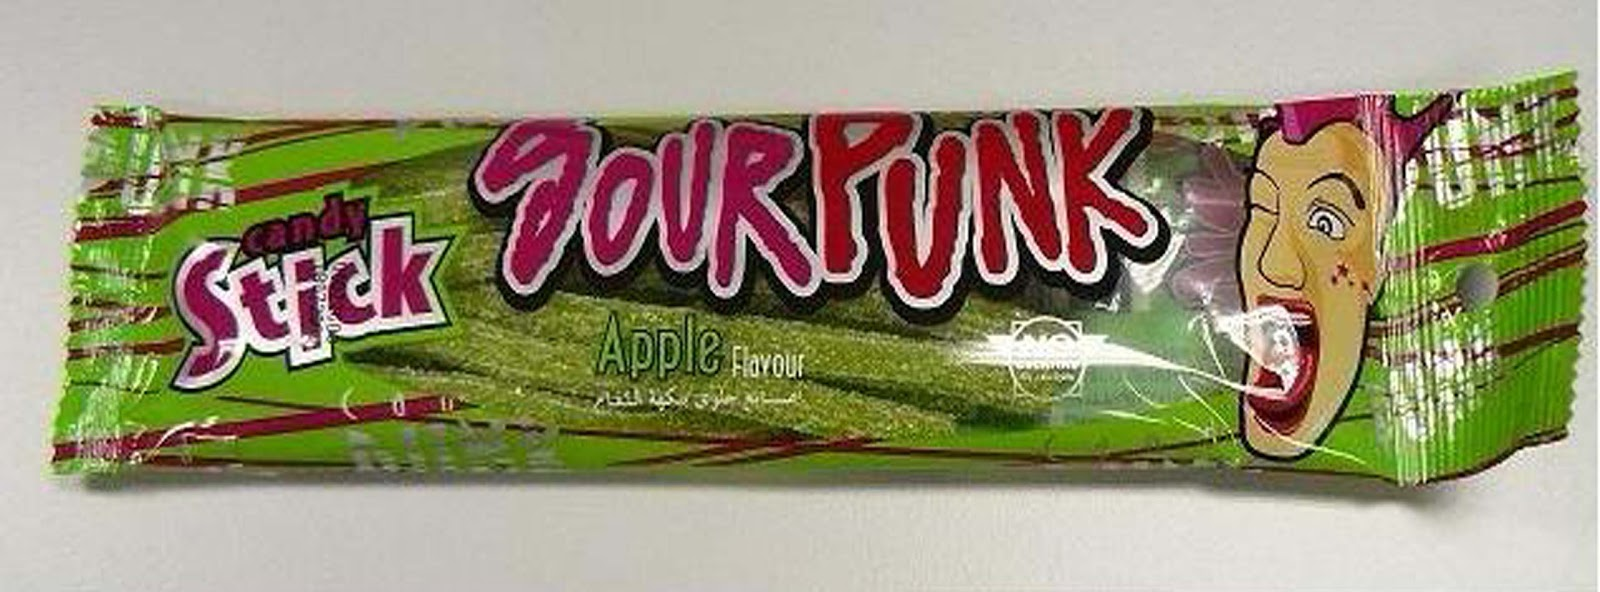 Amazon – Sour Punk 40g @ Rs 30 – 3 Flavors Available – Apple – Blueberry – Lemon – Free Shipping Included IMPORTED PRODU